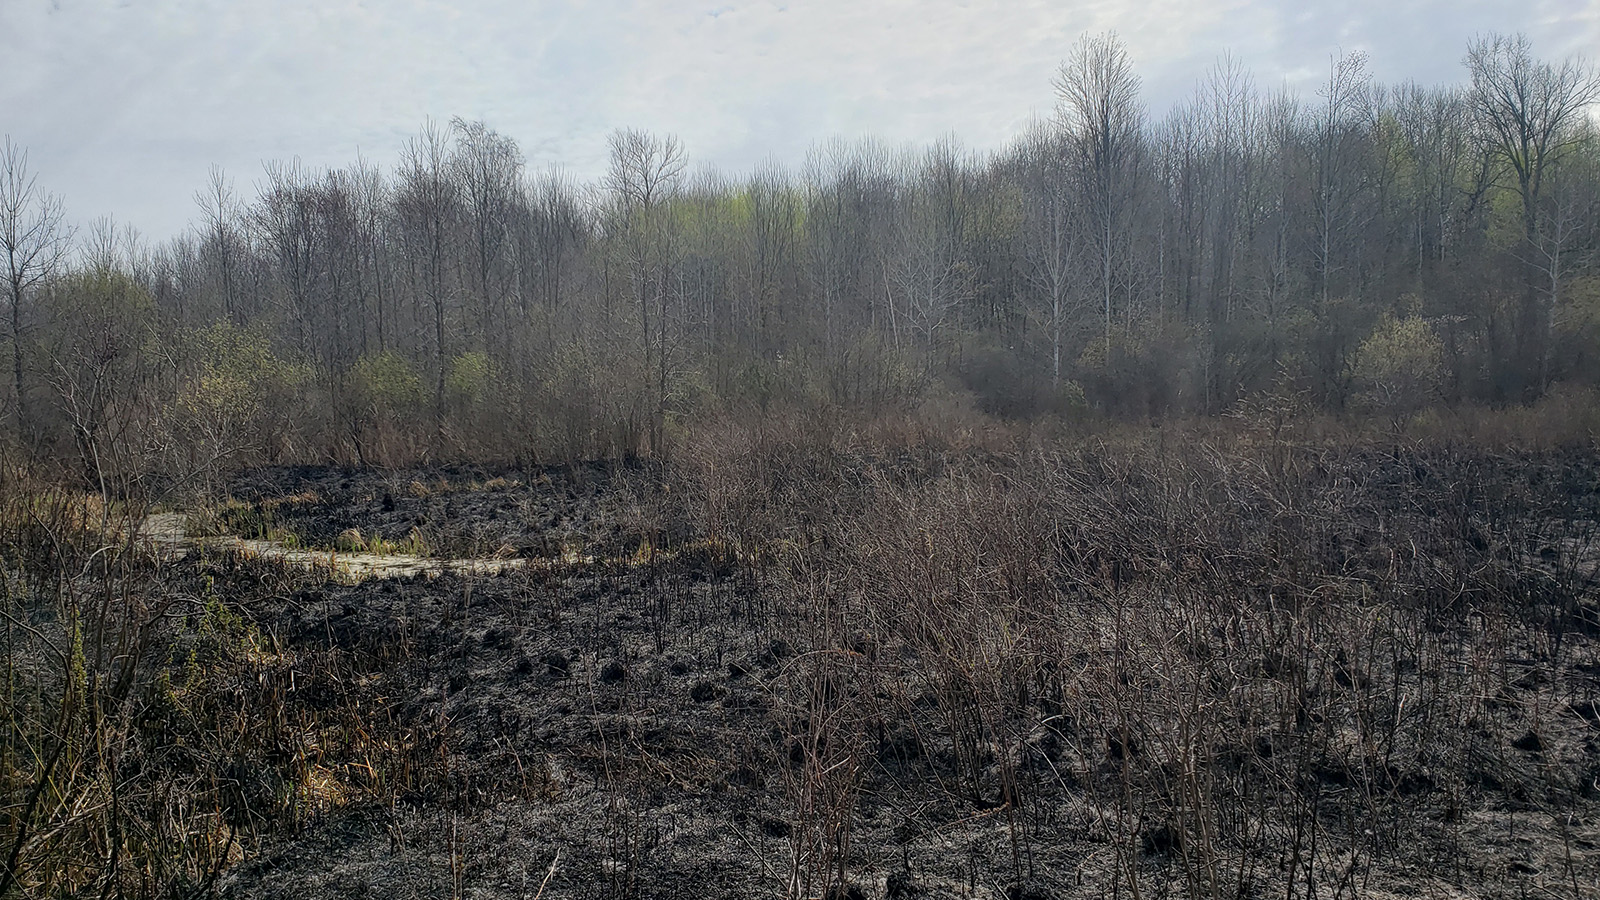 Scorched vegetation from a prescribed burn in front of unburned trees